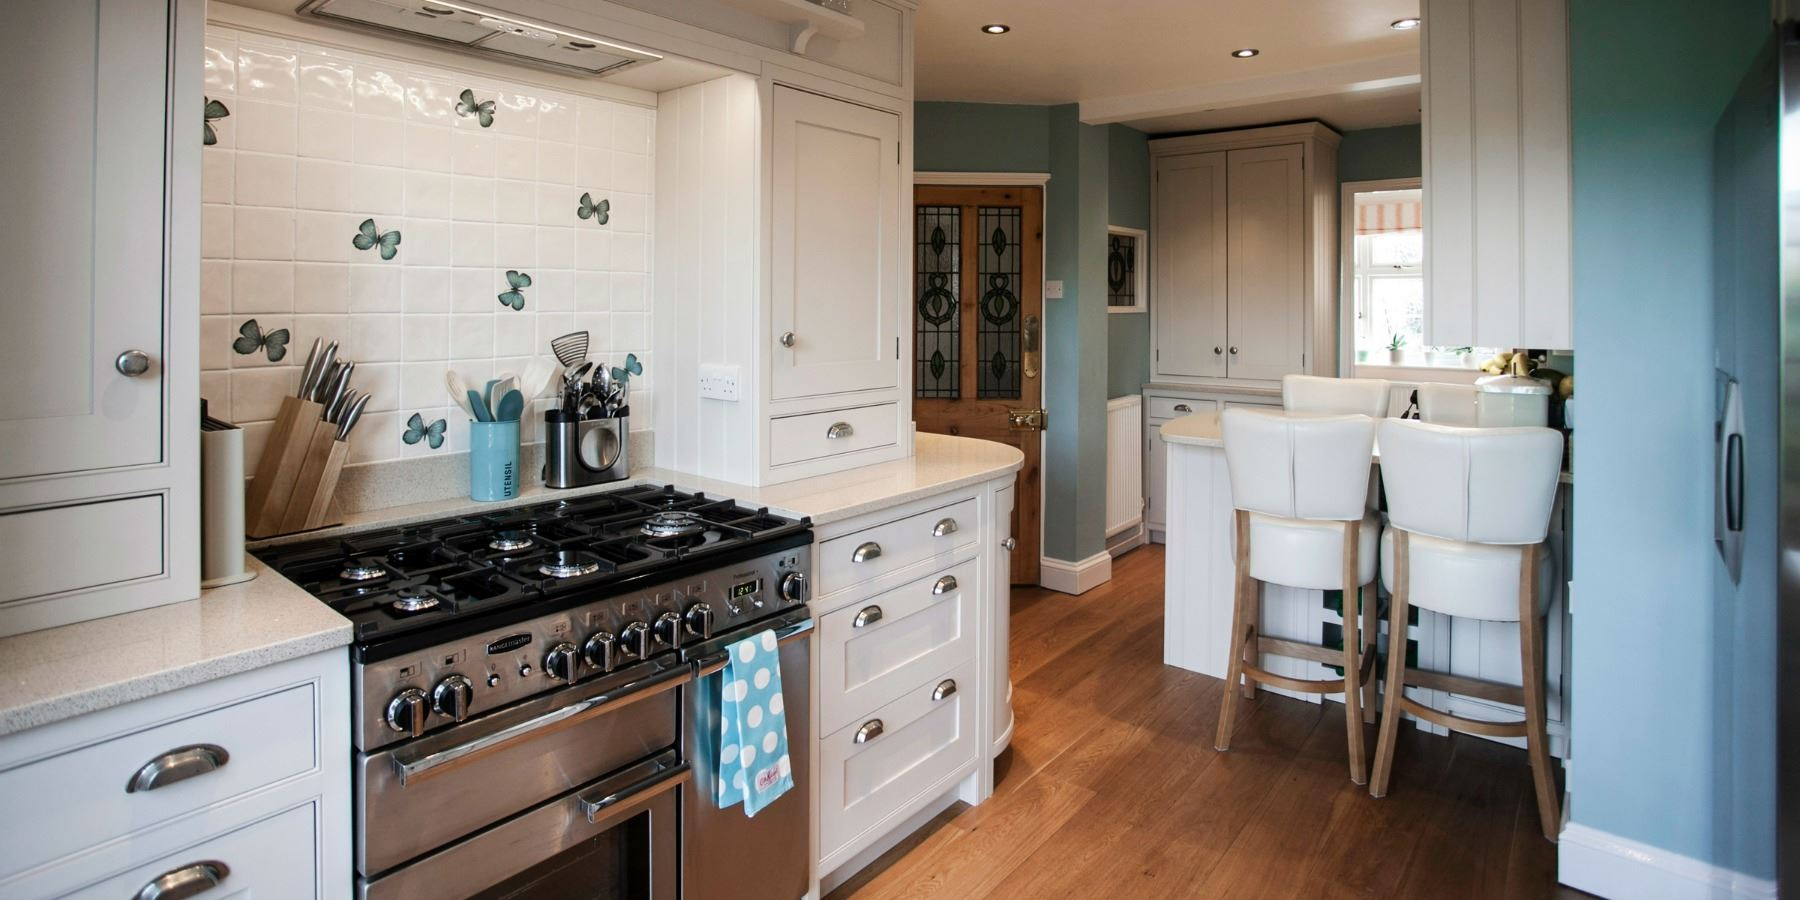 Burlanes Interiors - Burlanes custom built, bespoke kitchen